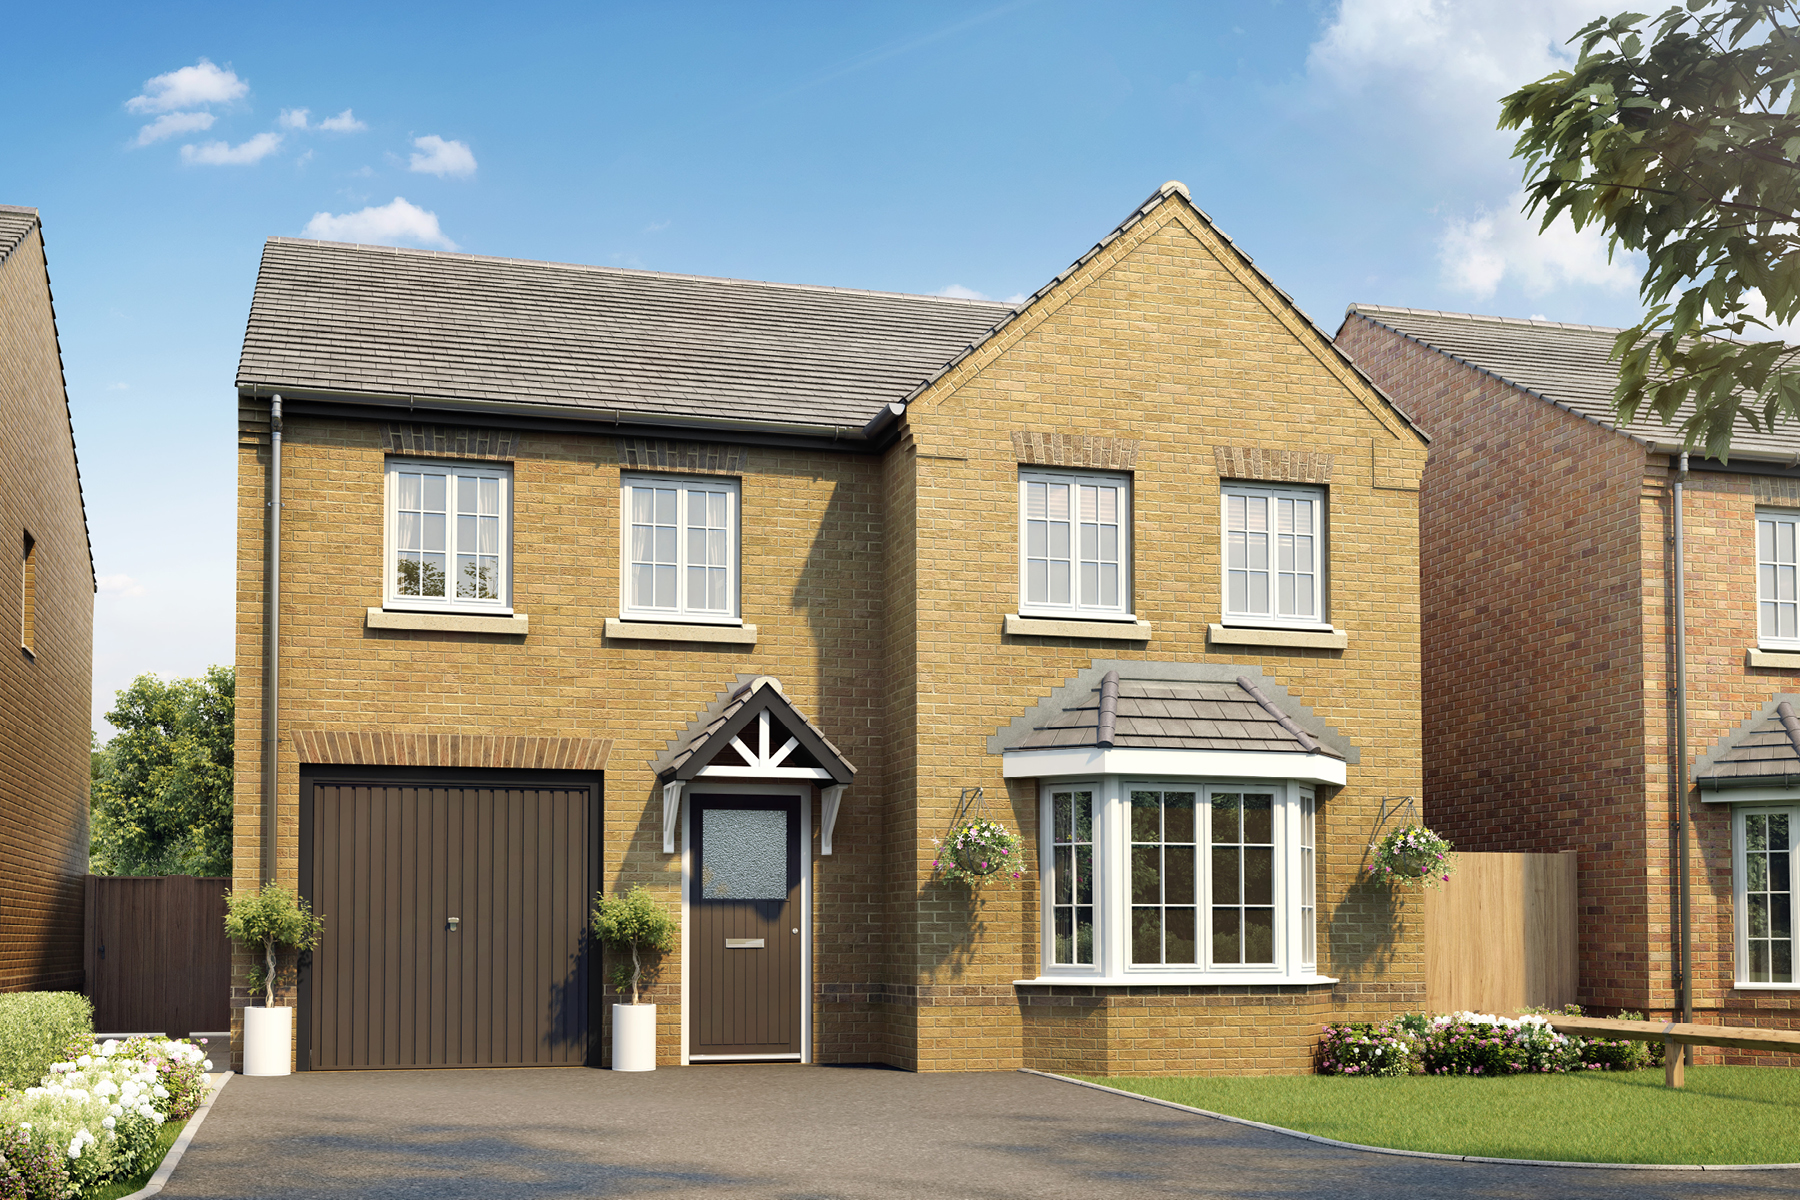 New TWY - Foxley Meadows - CGI - Haddenham